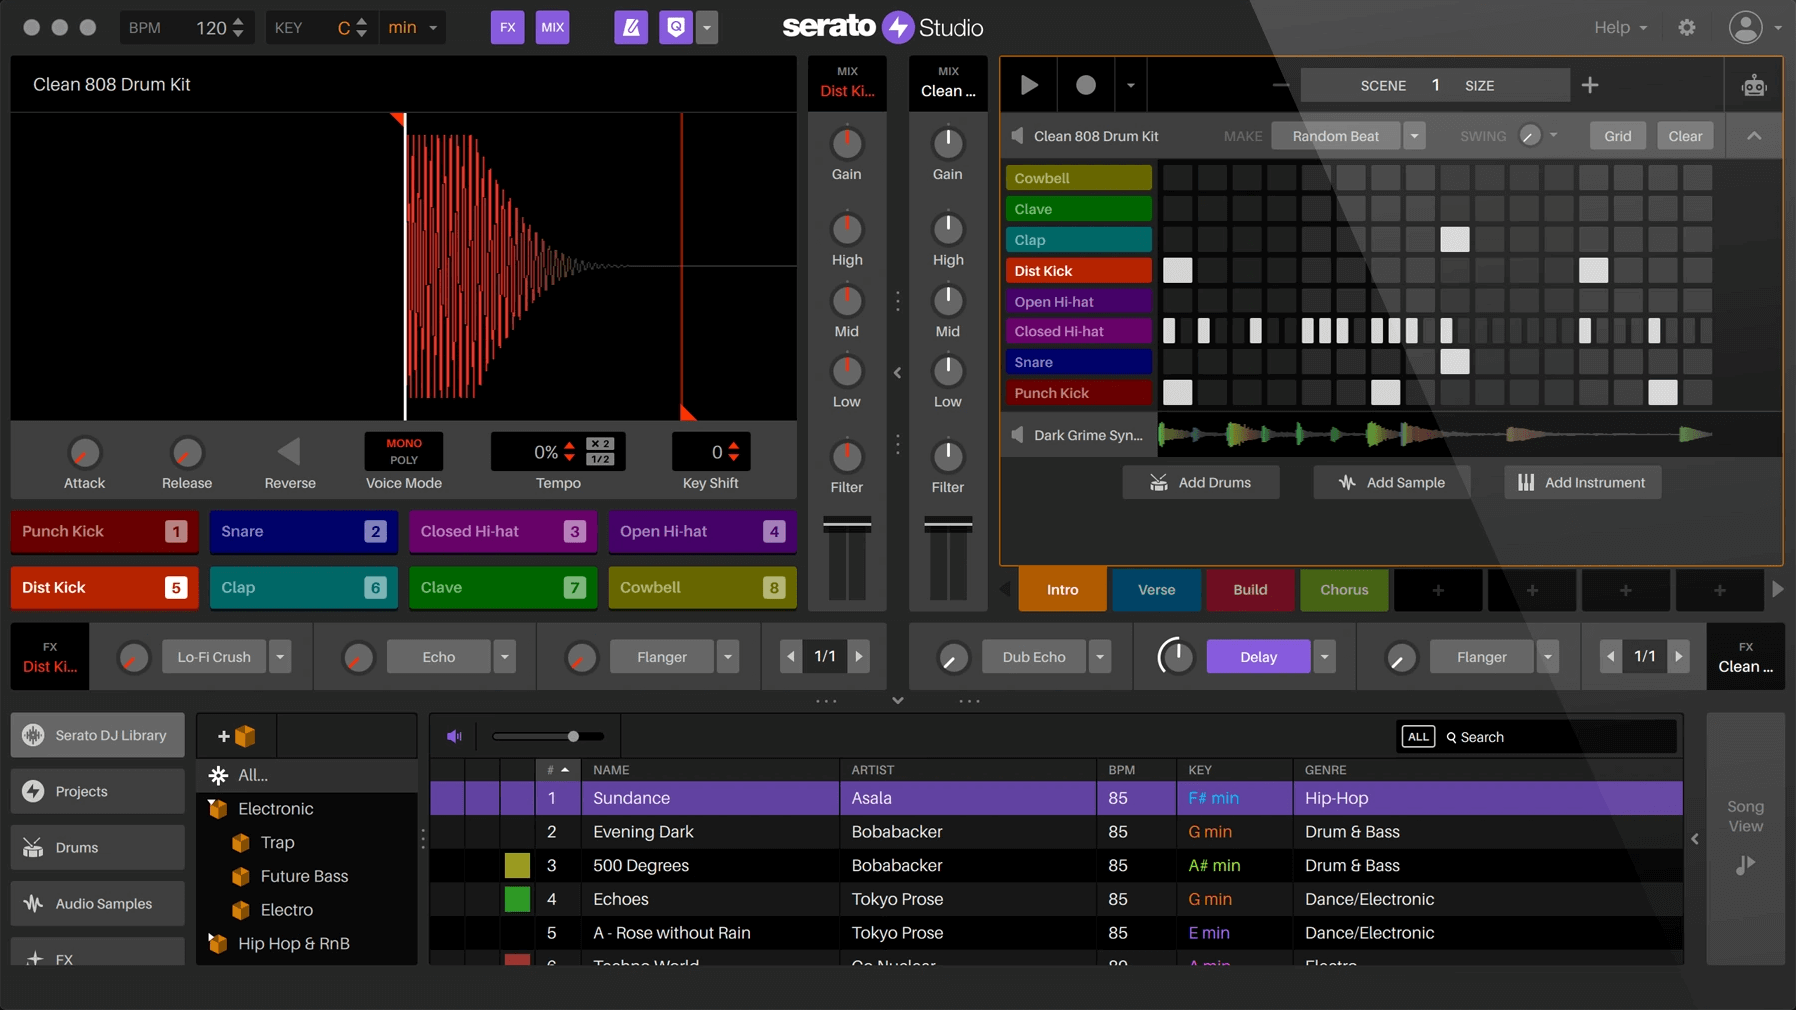 Serato Studio 1.4 offers outright pricing and audio tracks